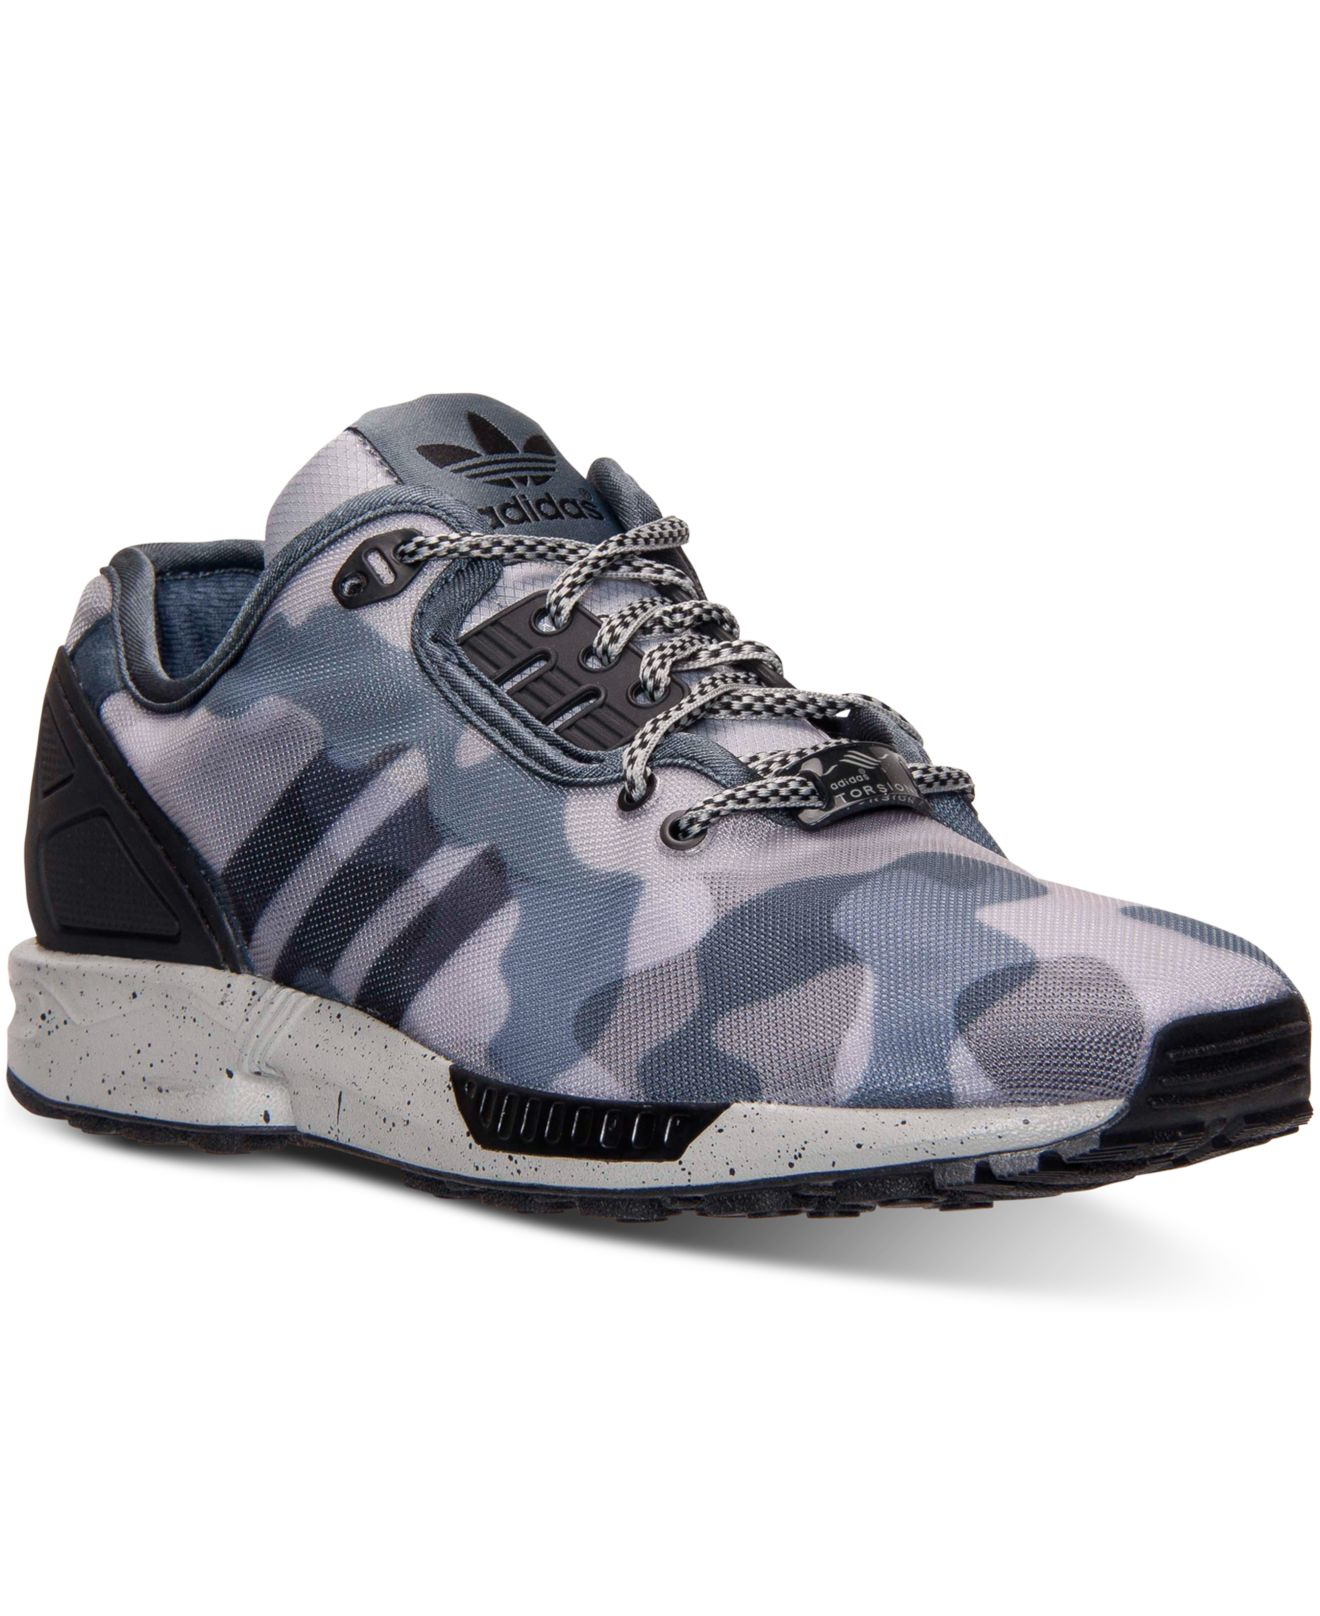 adidas men 39 s zx flux decon running sneakers from finish. Black Bedroom Furniture Sets. Home Design Ideas